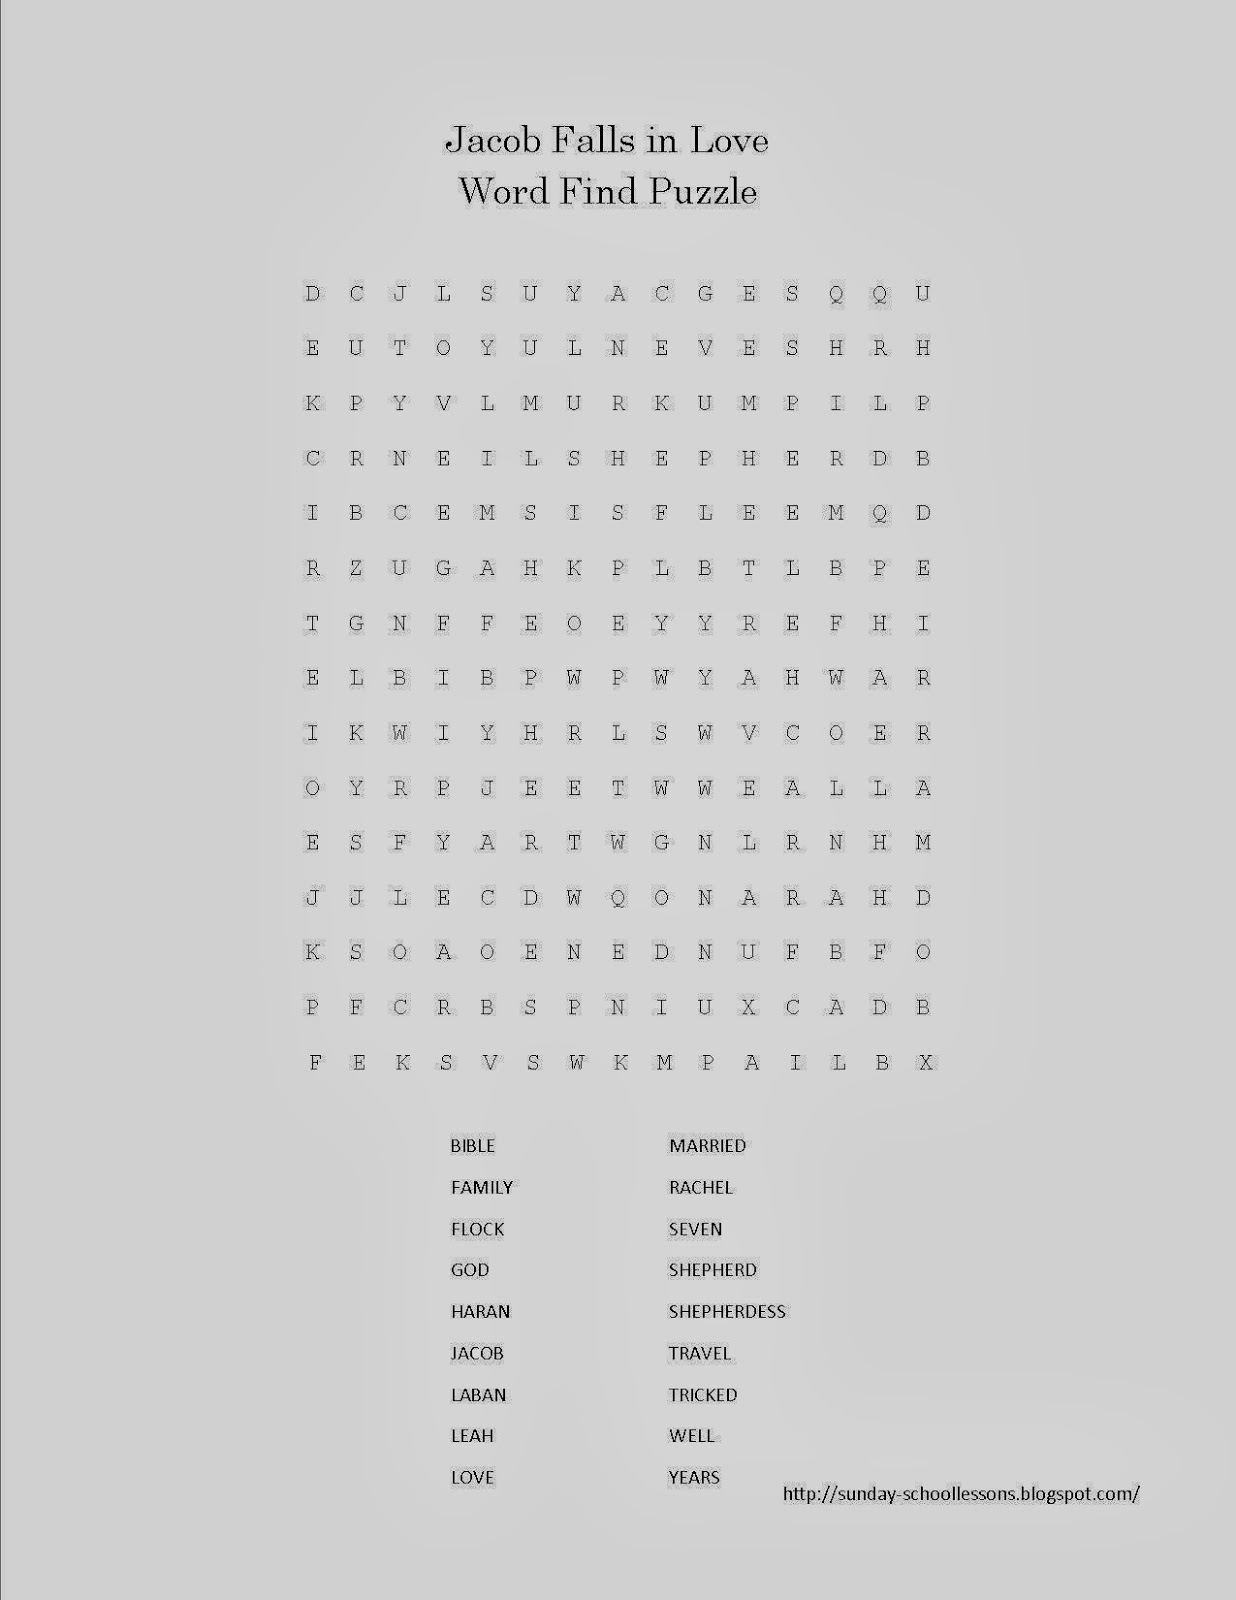 Jacob Falls In Love Word Search Puzzle FREE Sunday School Acivities